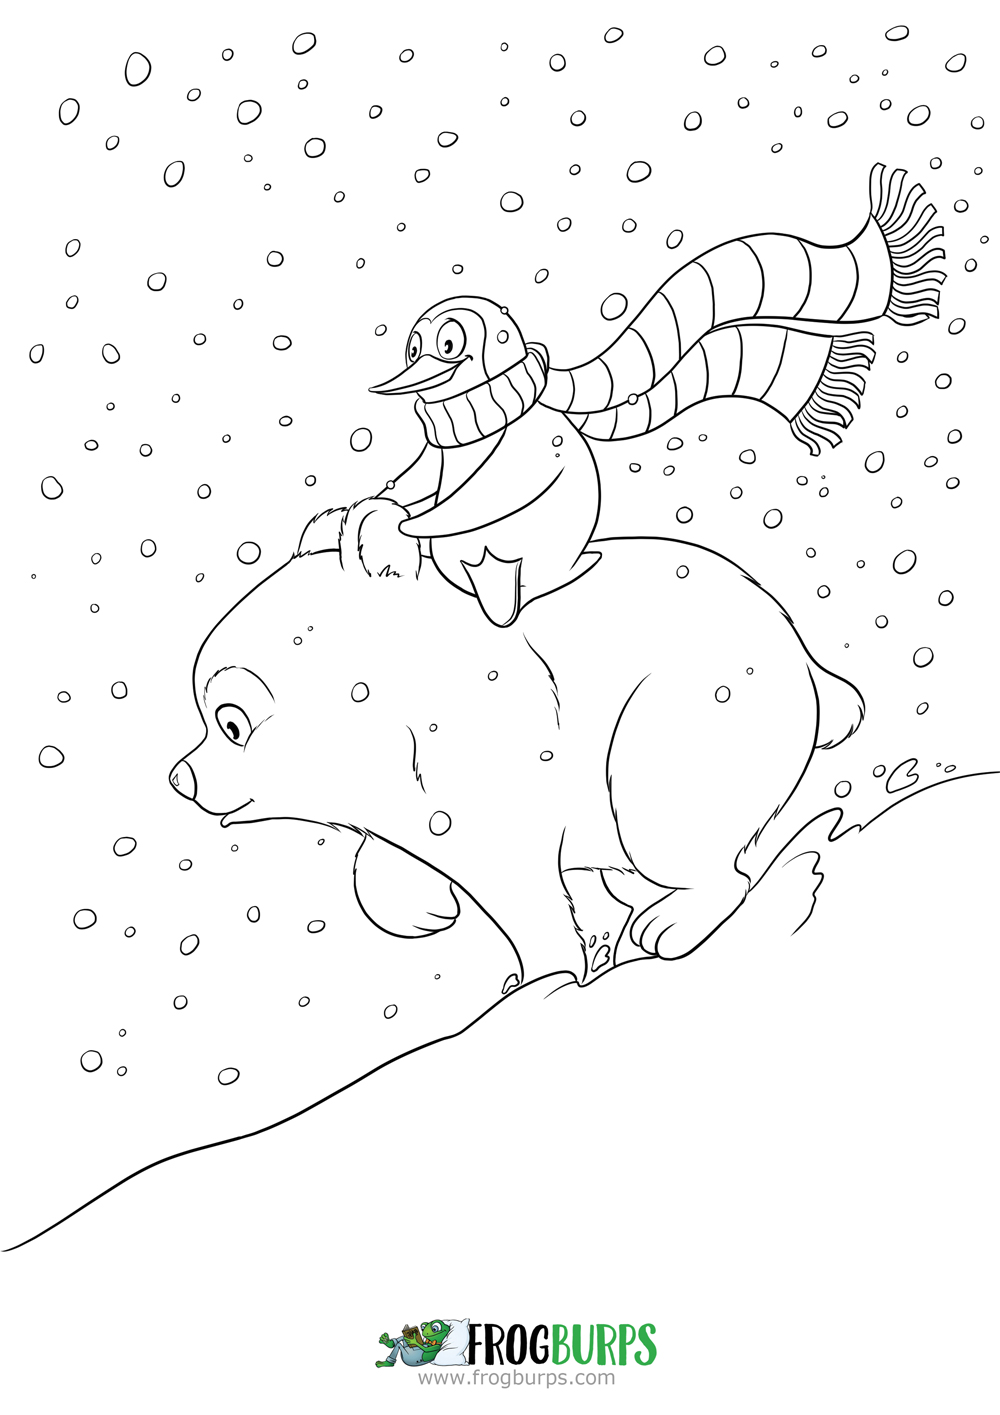 Snowfriends 2 | Coloring Page